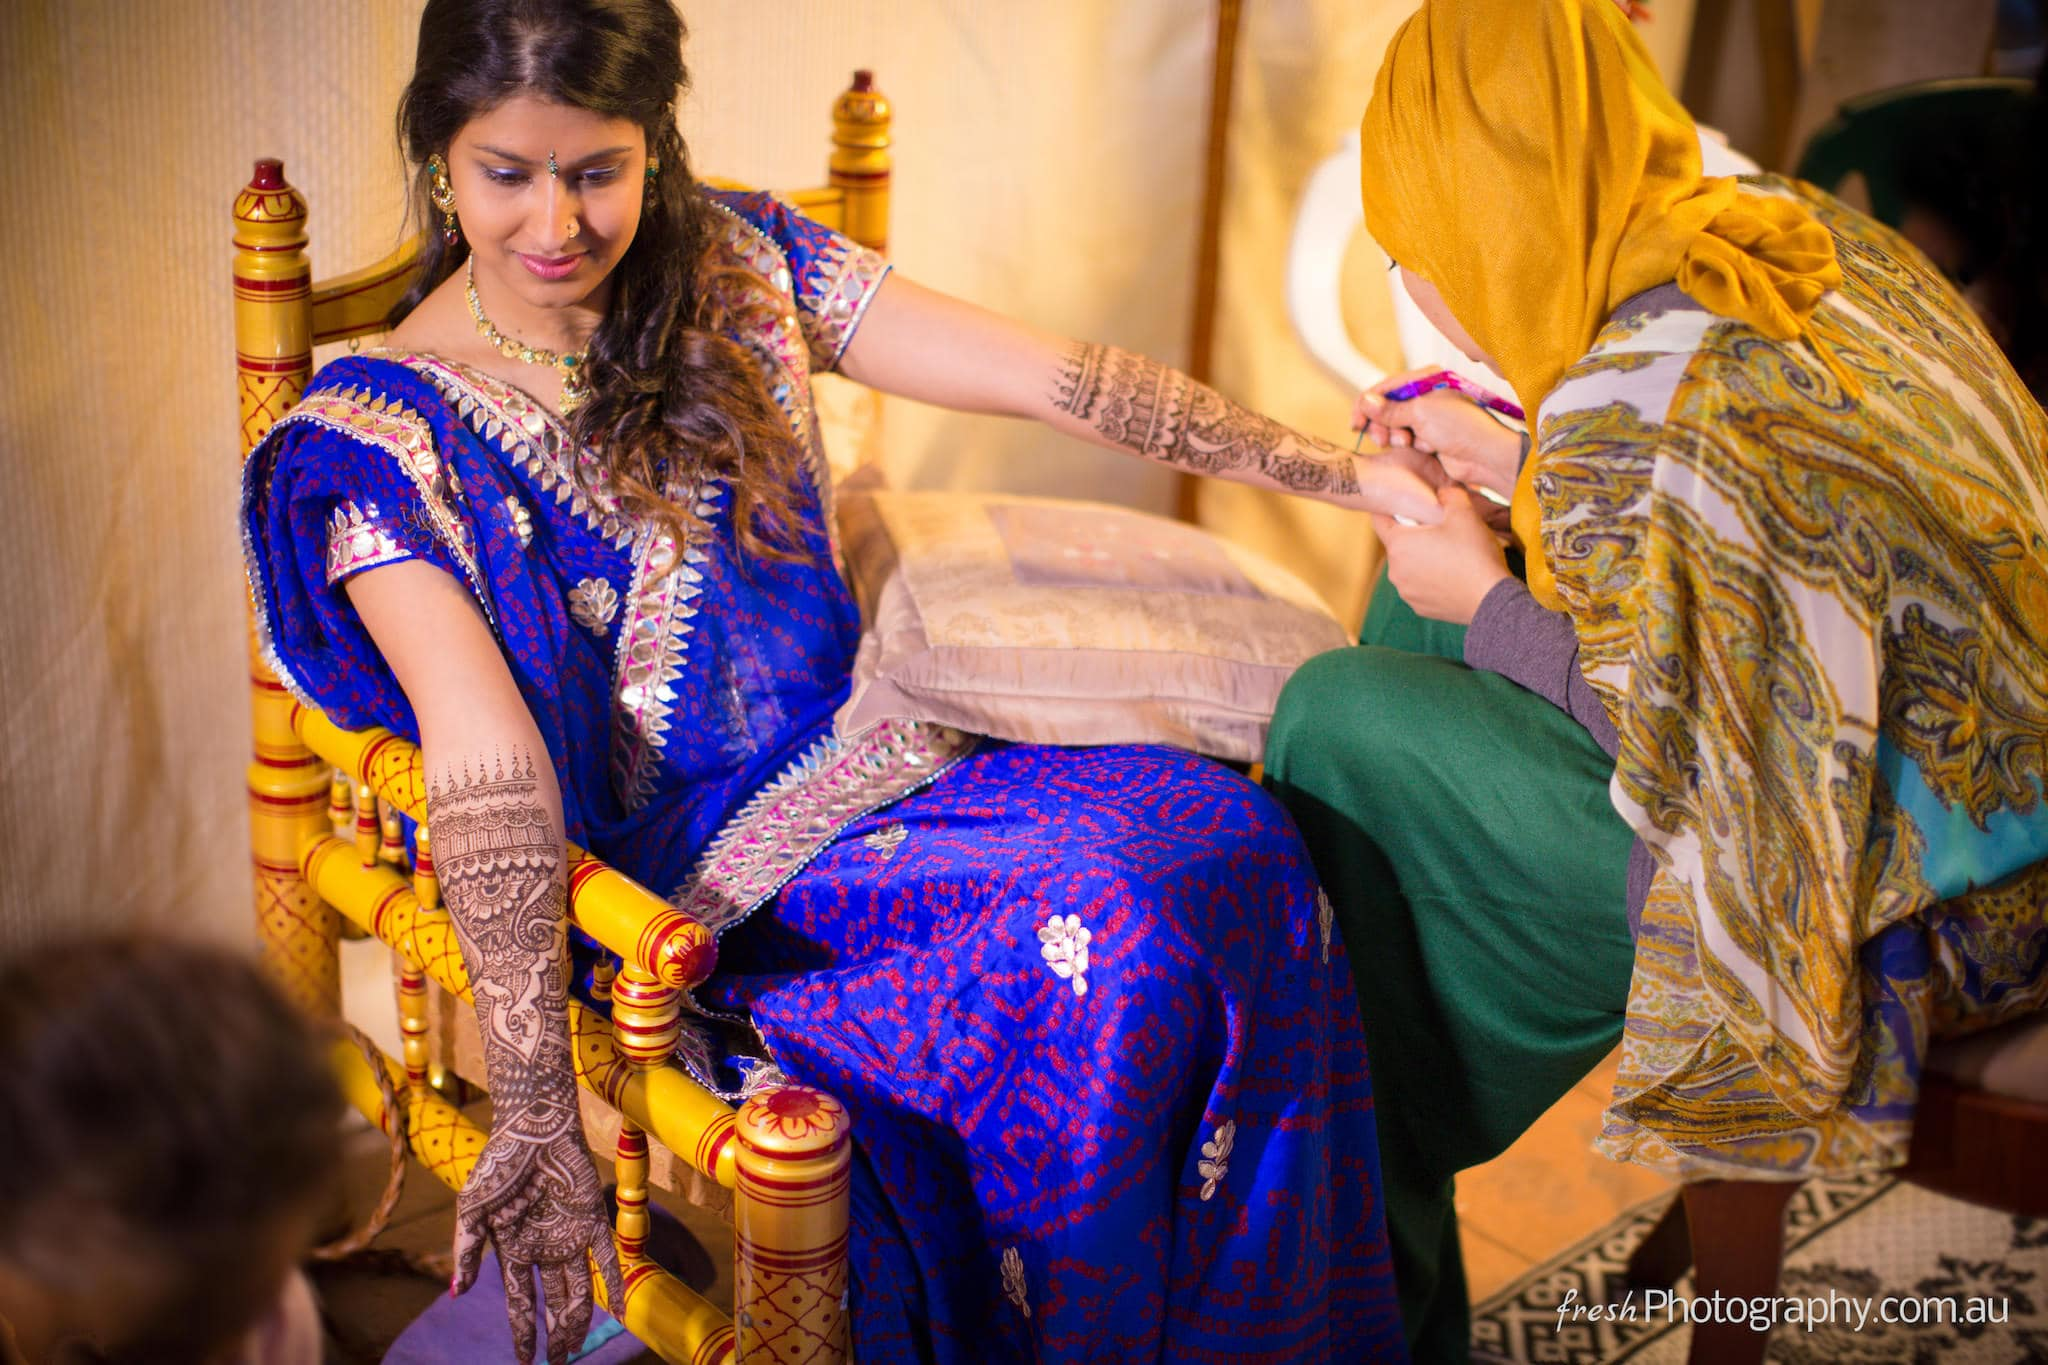 Henna painting - Indian wedding preparation - Photojournalism Melbourne